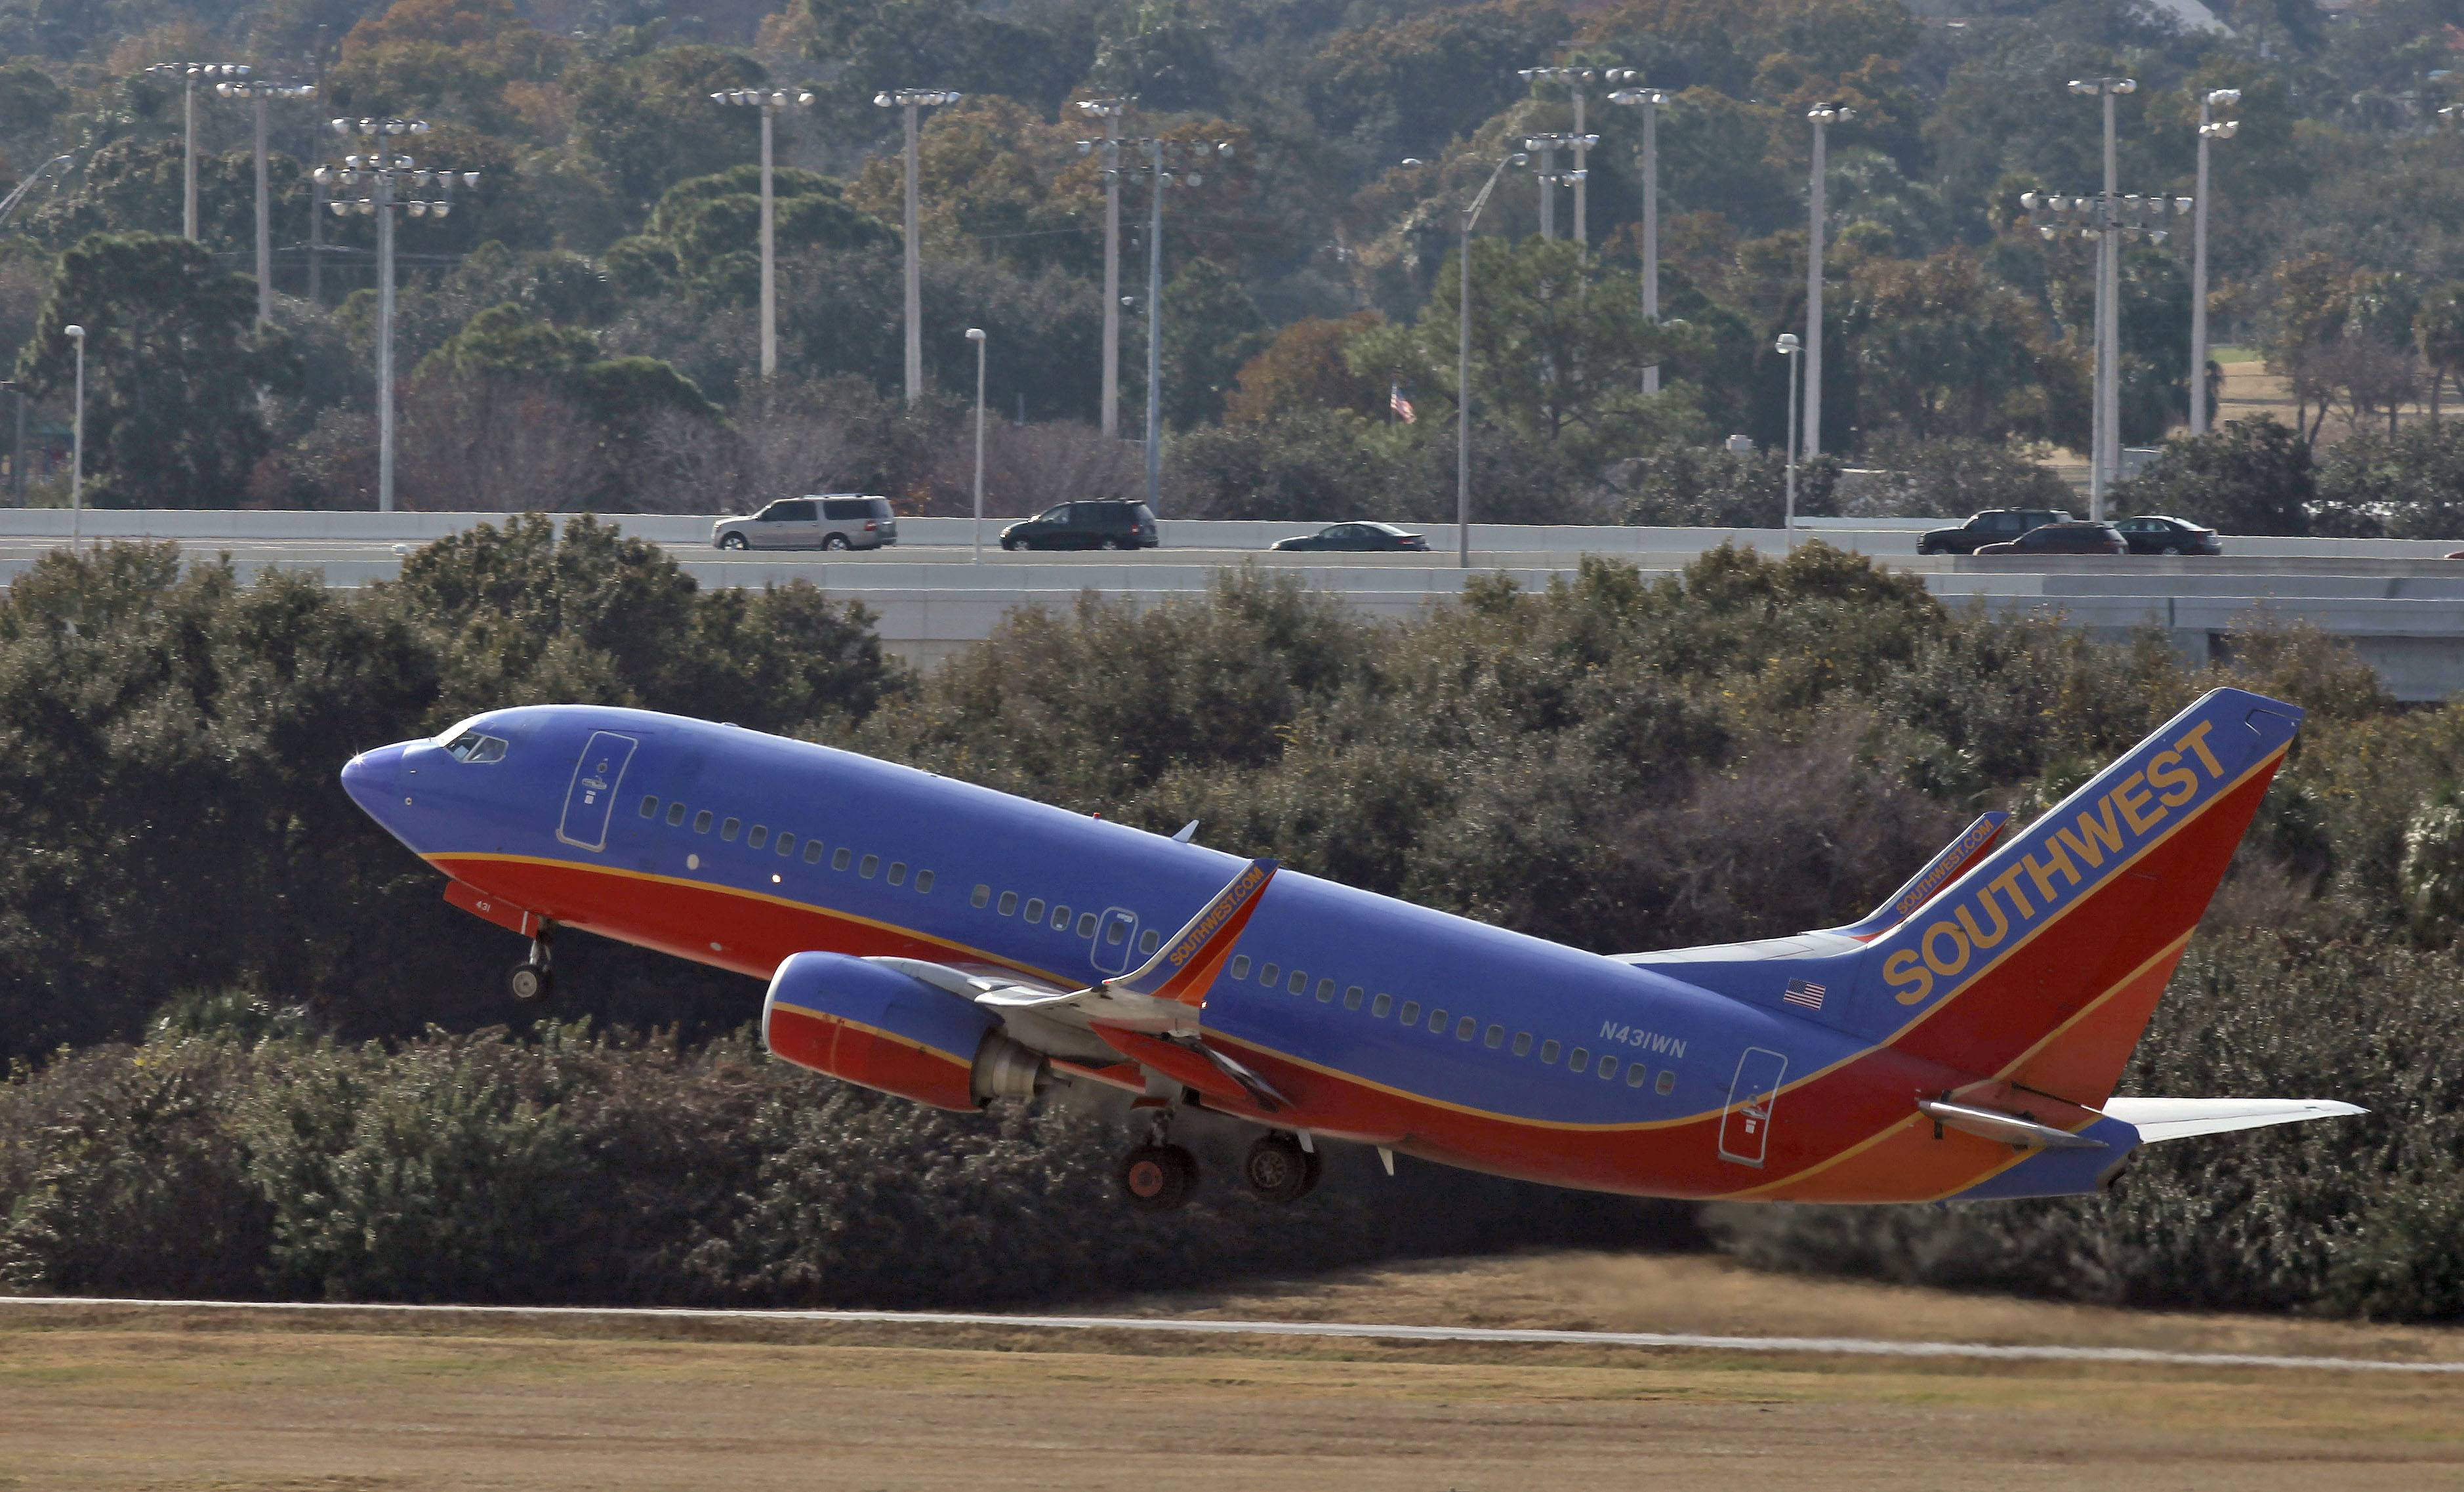 Taking over routes flown by AirTran Airways, Southwest Airlines flew into new territory on Tuesday -- Jamaica, the Bahamas and Aruba. Southwest purchased AirTran in 2011.